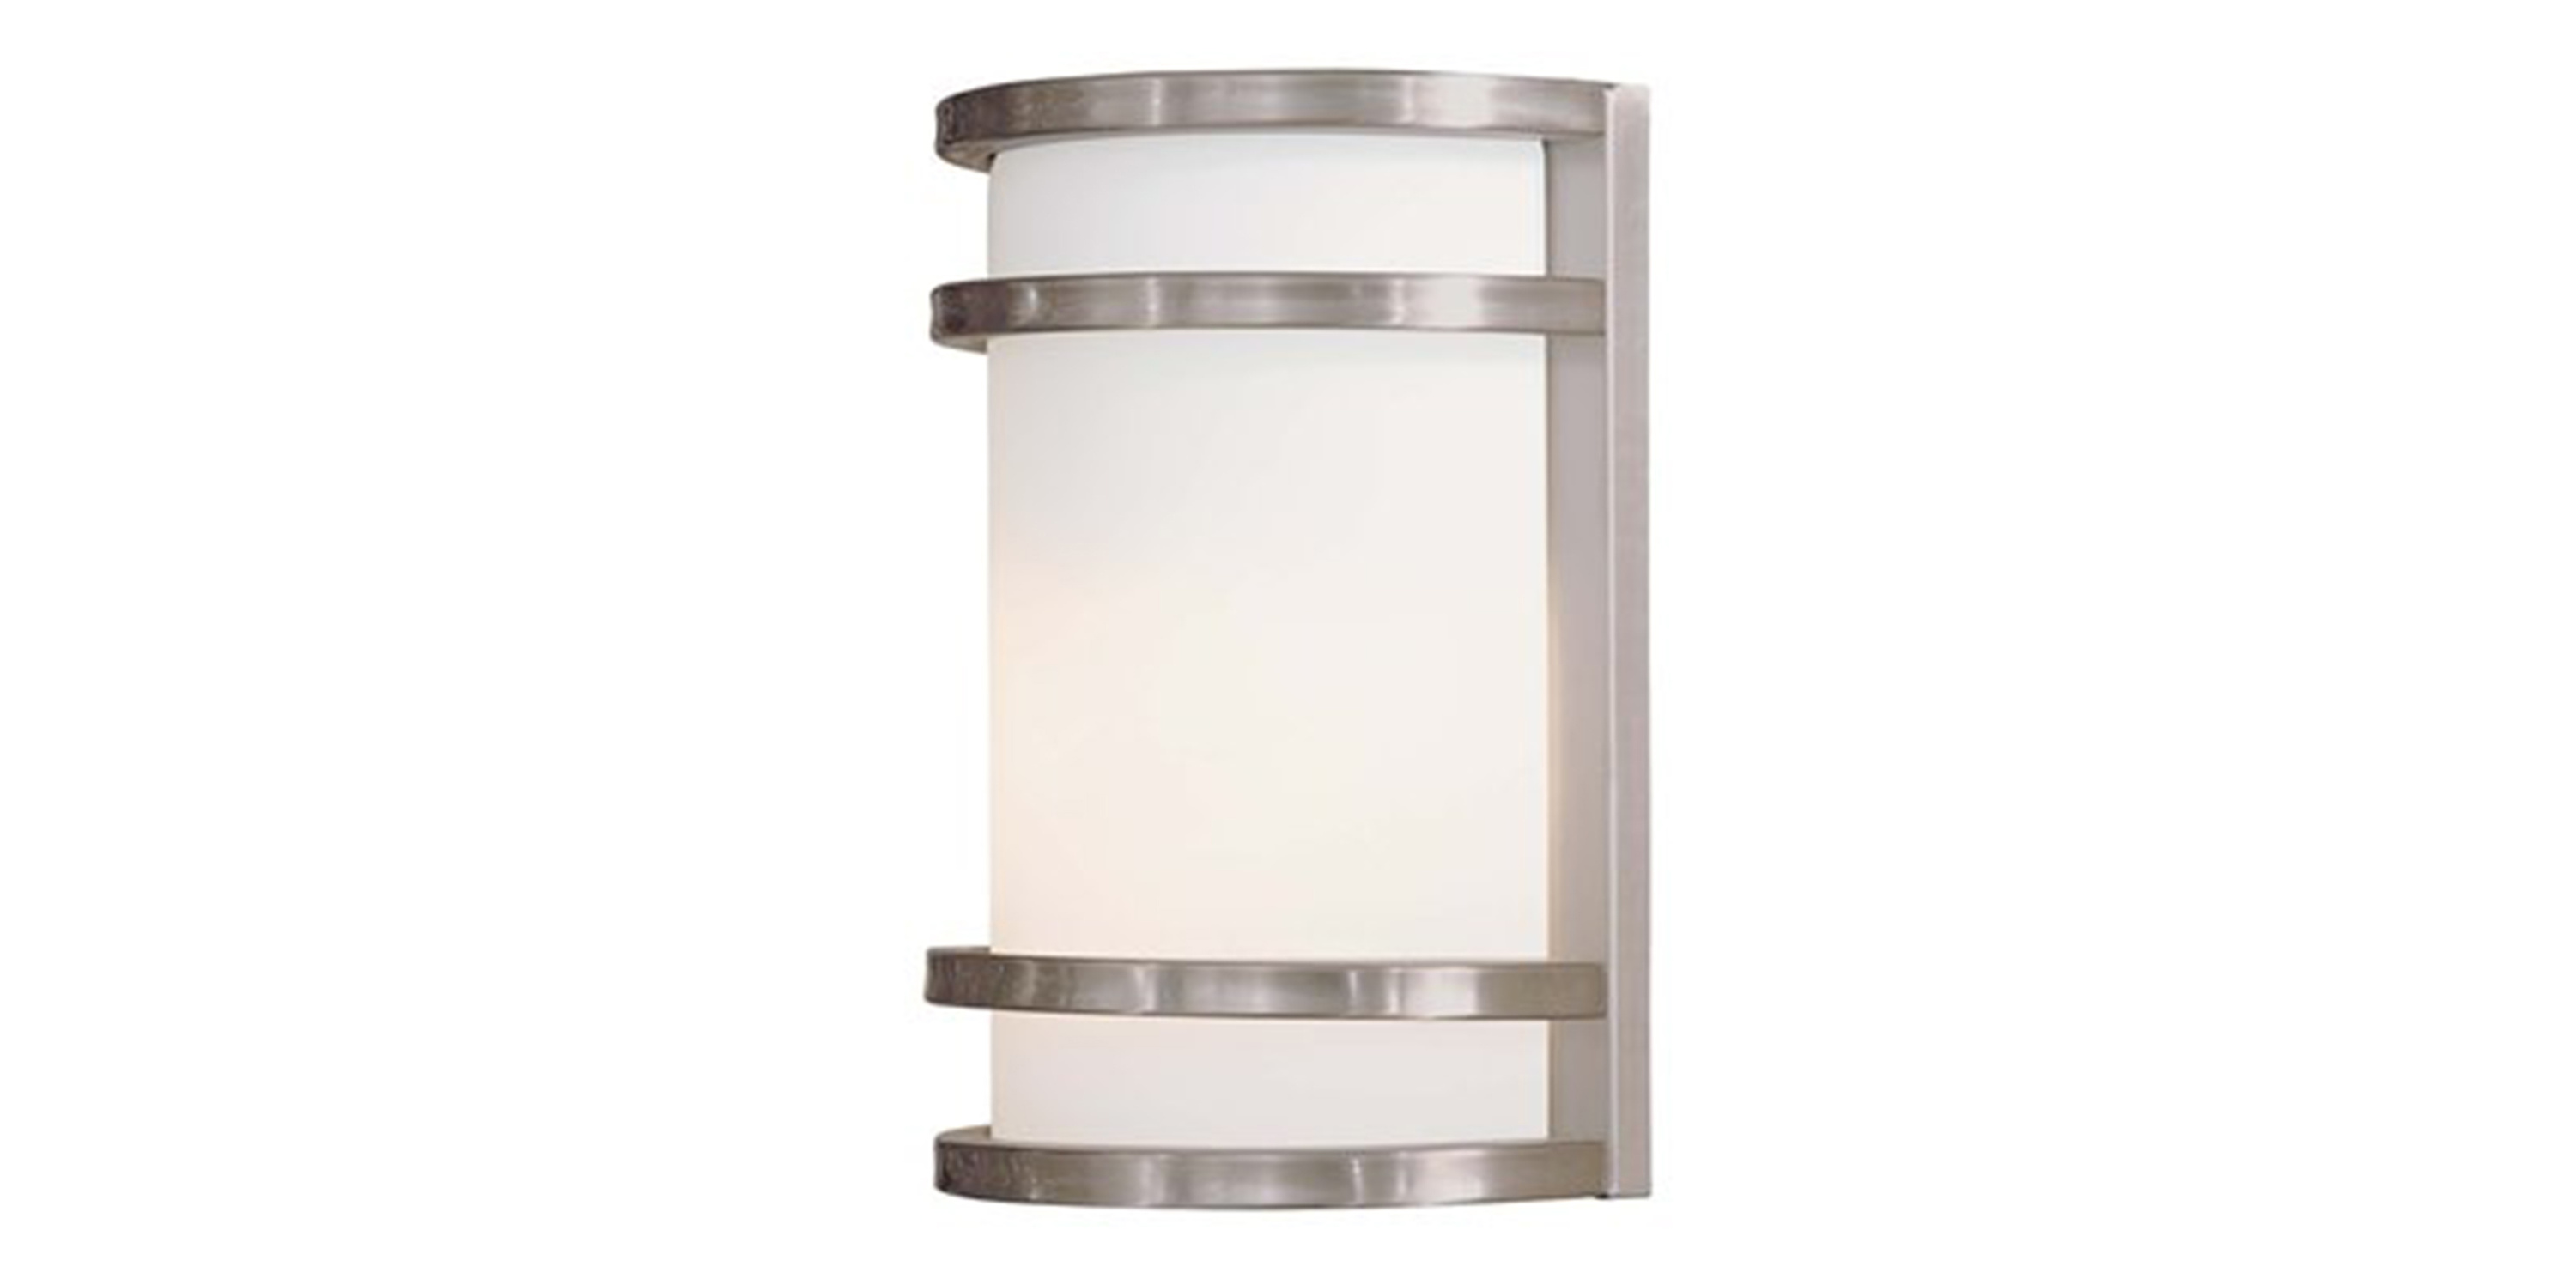 Led Outdoor Wall Sconce Rp Lighting Fans